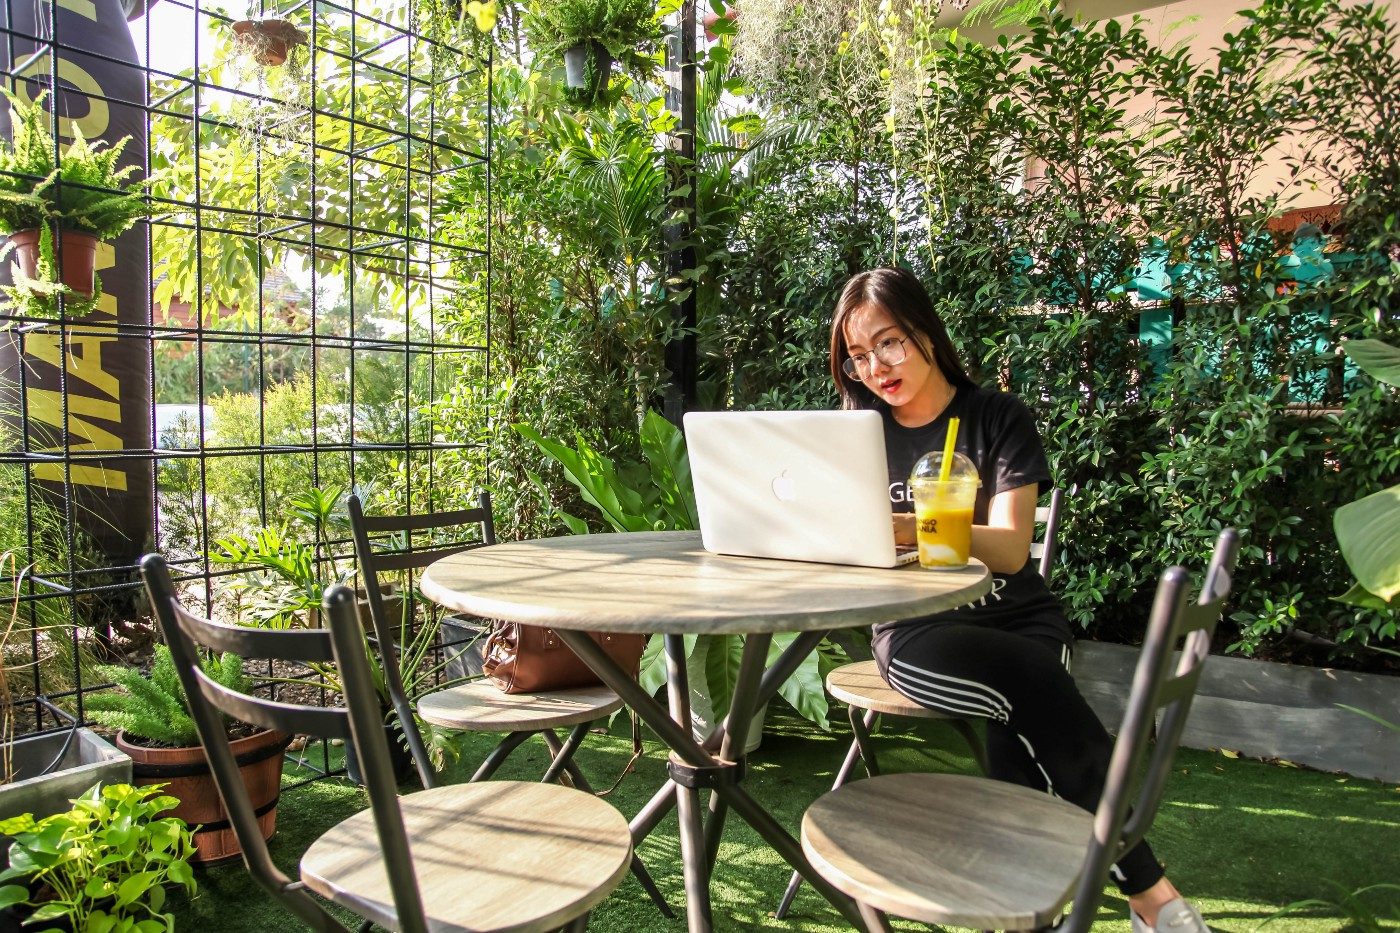 Woman sitting at a table, working on her laptop. She is on a lawn, surrounded by plants and small trees in an indoor/outdoor hybrid setting. She has a yellow beverage next to her laptop.